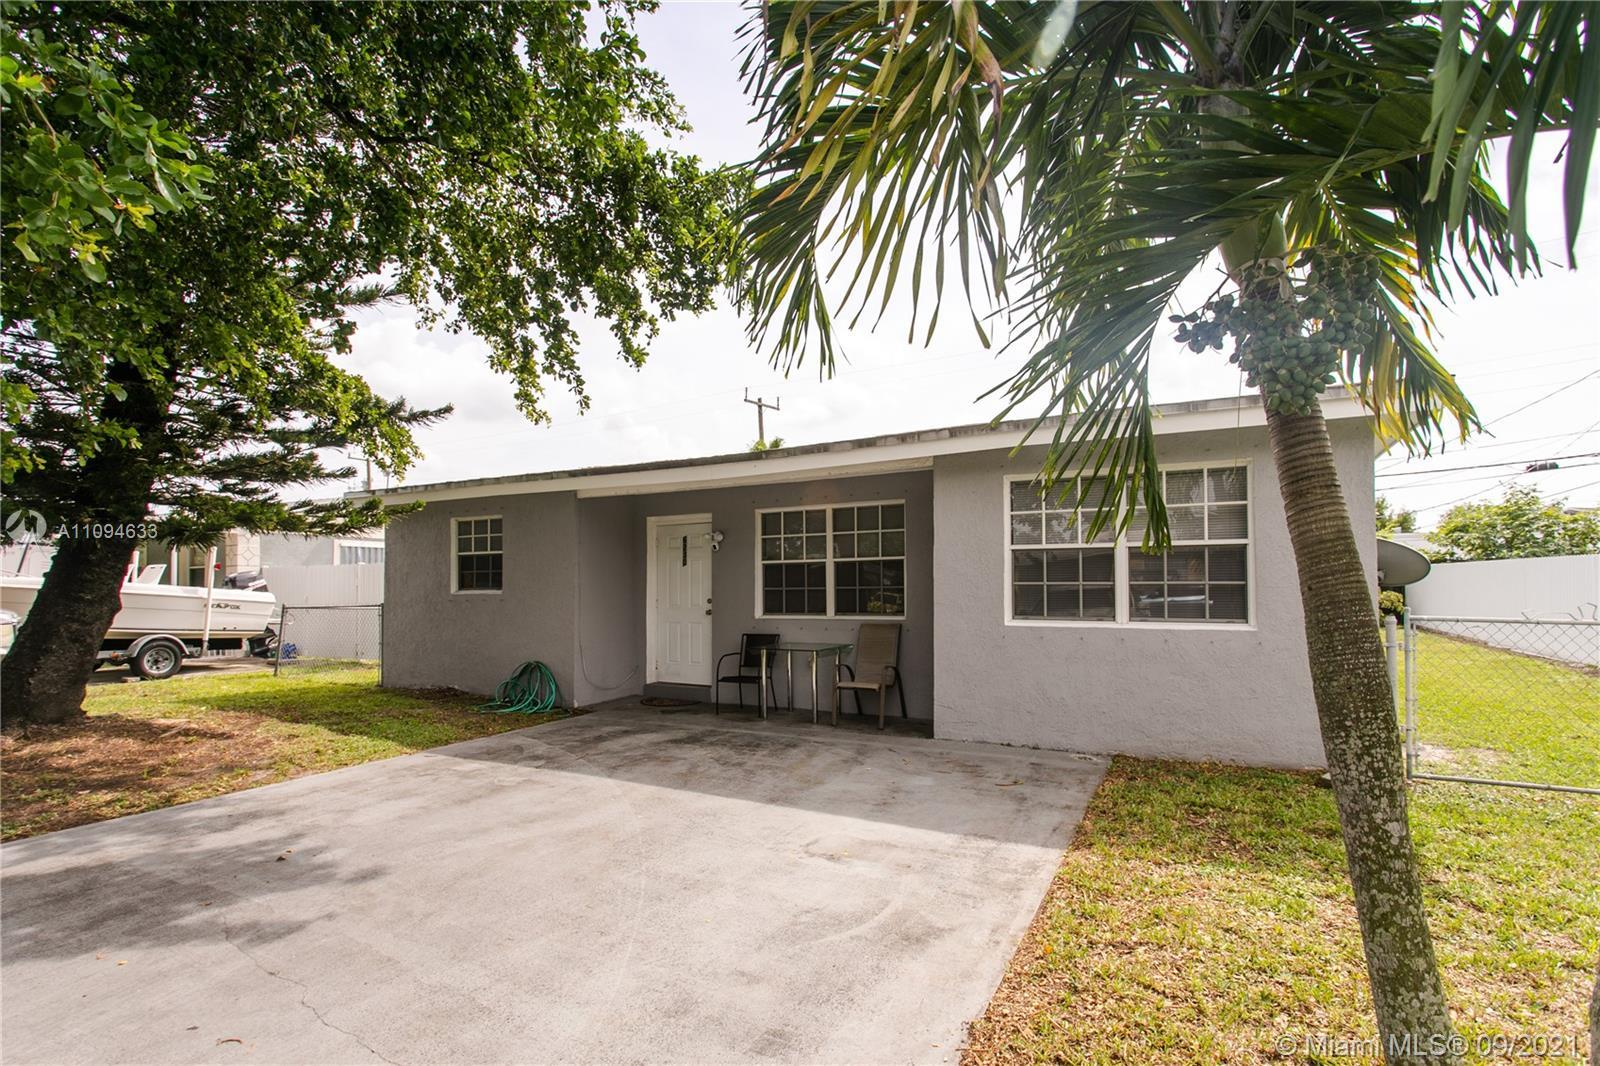 This is a 2/1+ Den house with kitchen; stainless appliances such as refrigerator, stove, microwave,